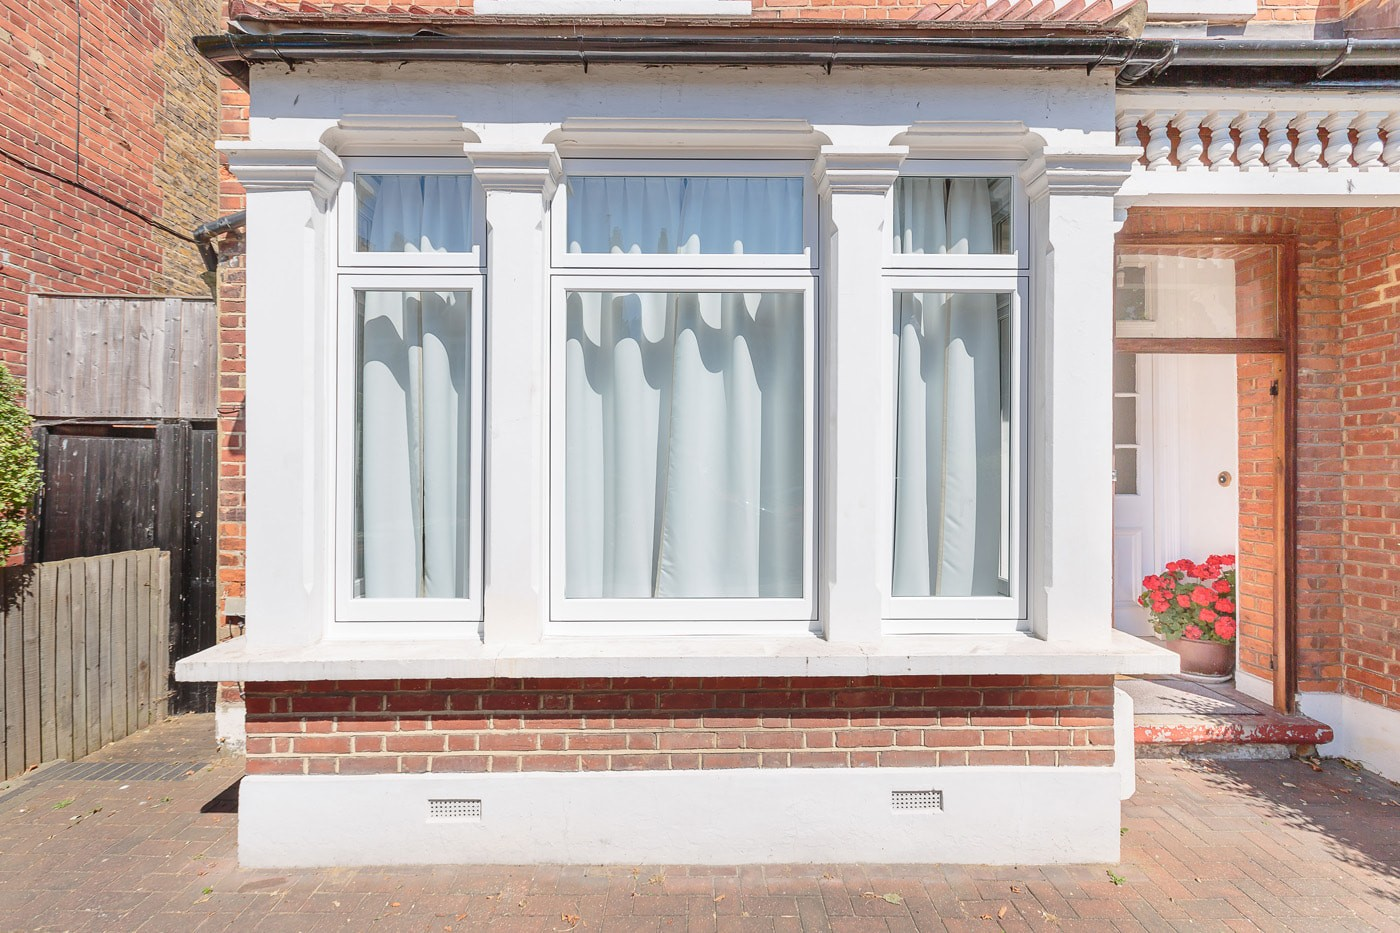 Find out more about benefits of uPVC vs aluminium windows. Aluminium is slimline, modern & offers vast colour options. Choose uPVC windows for their clean lines & traditional look. Get a free consultation for more advice.